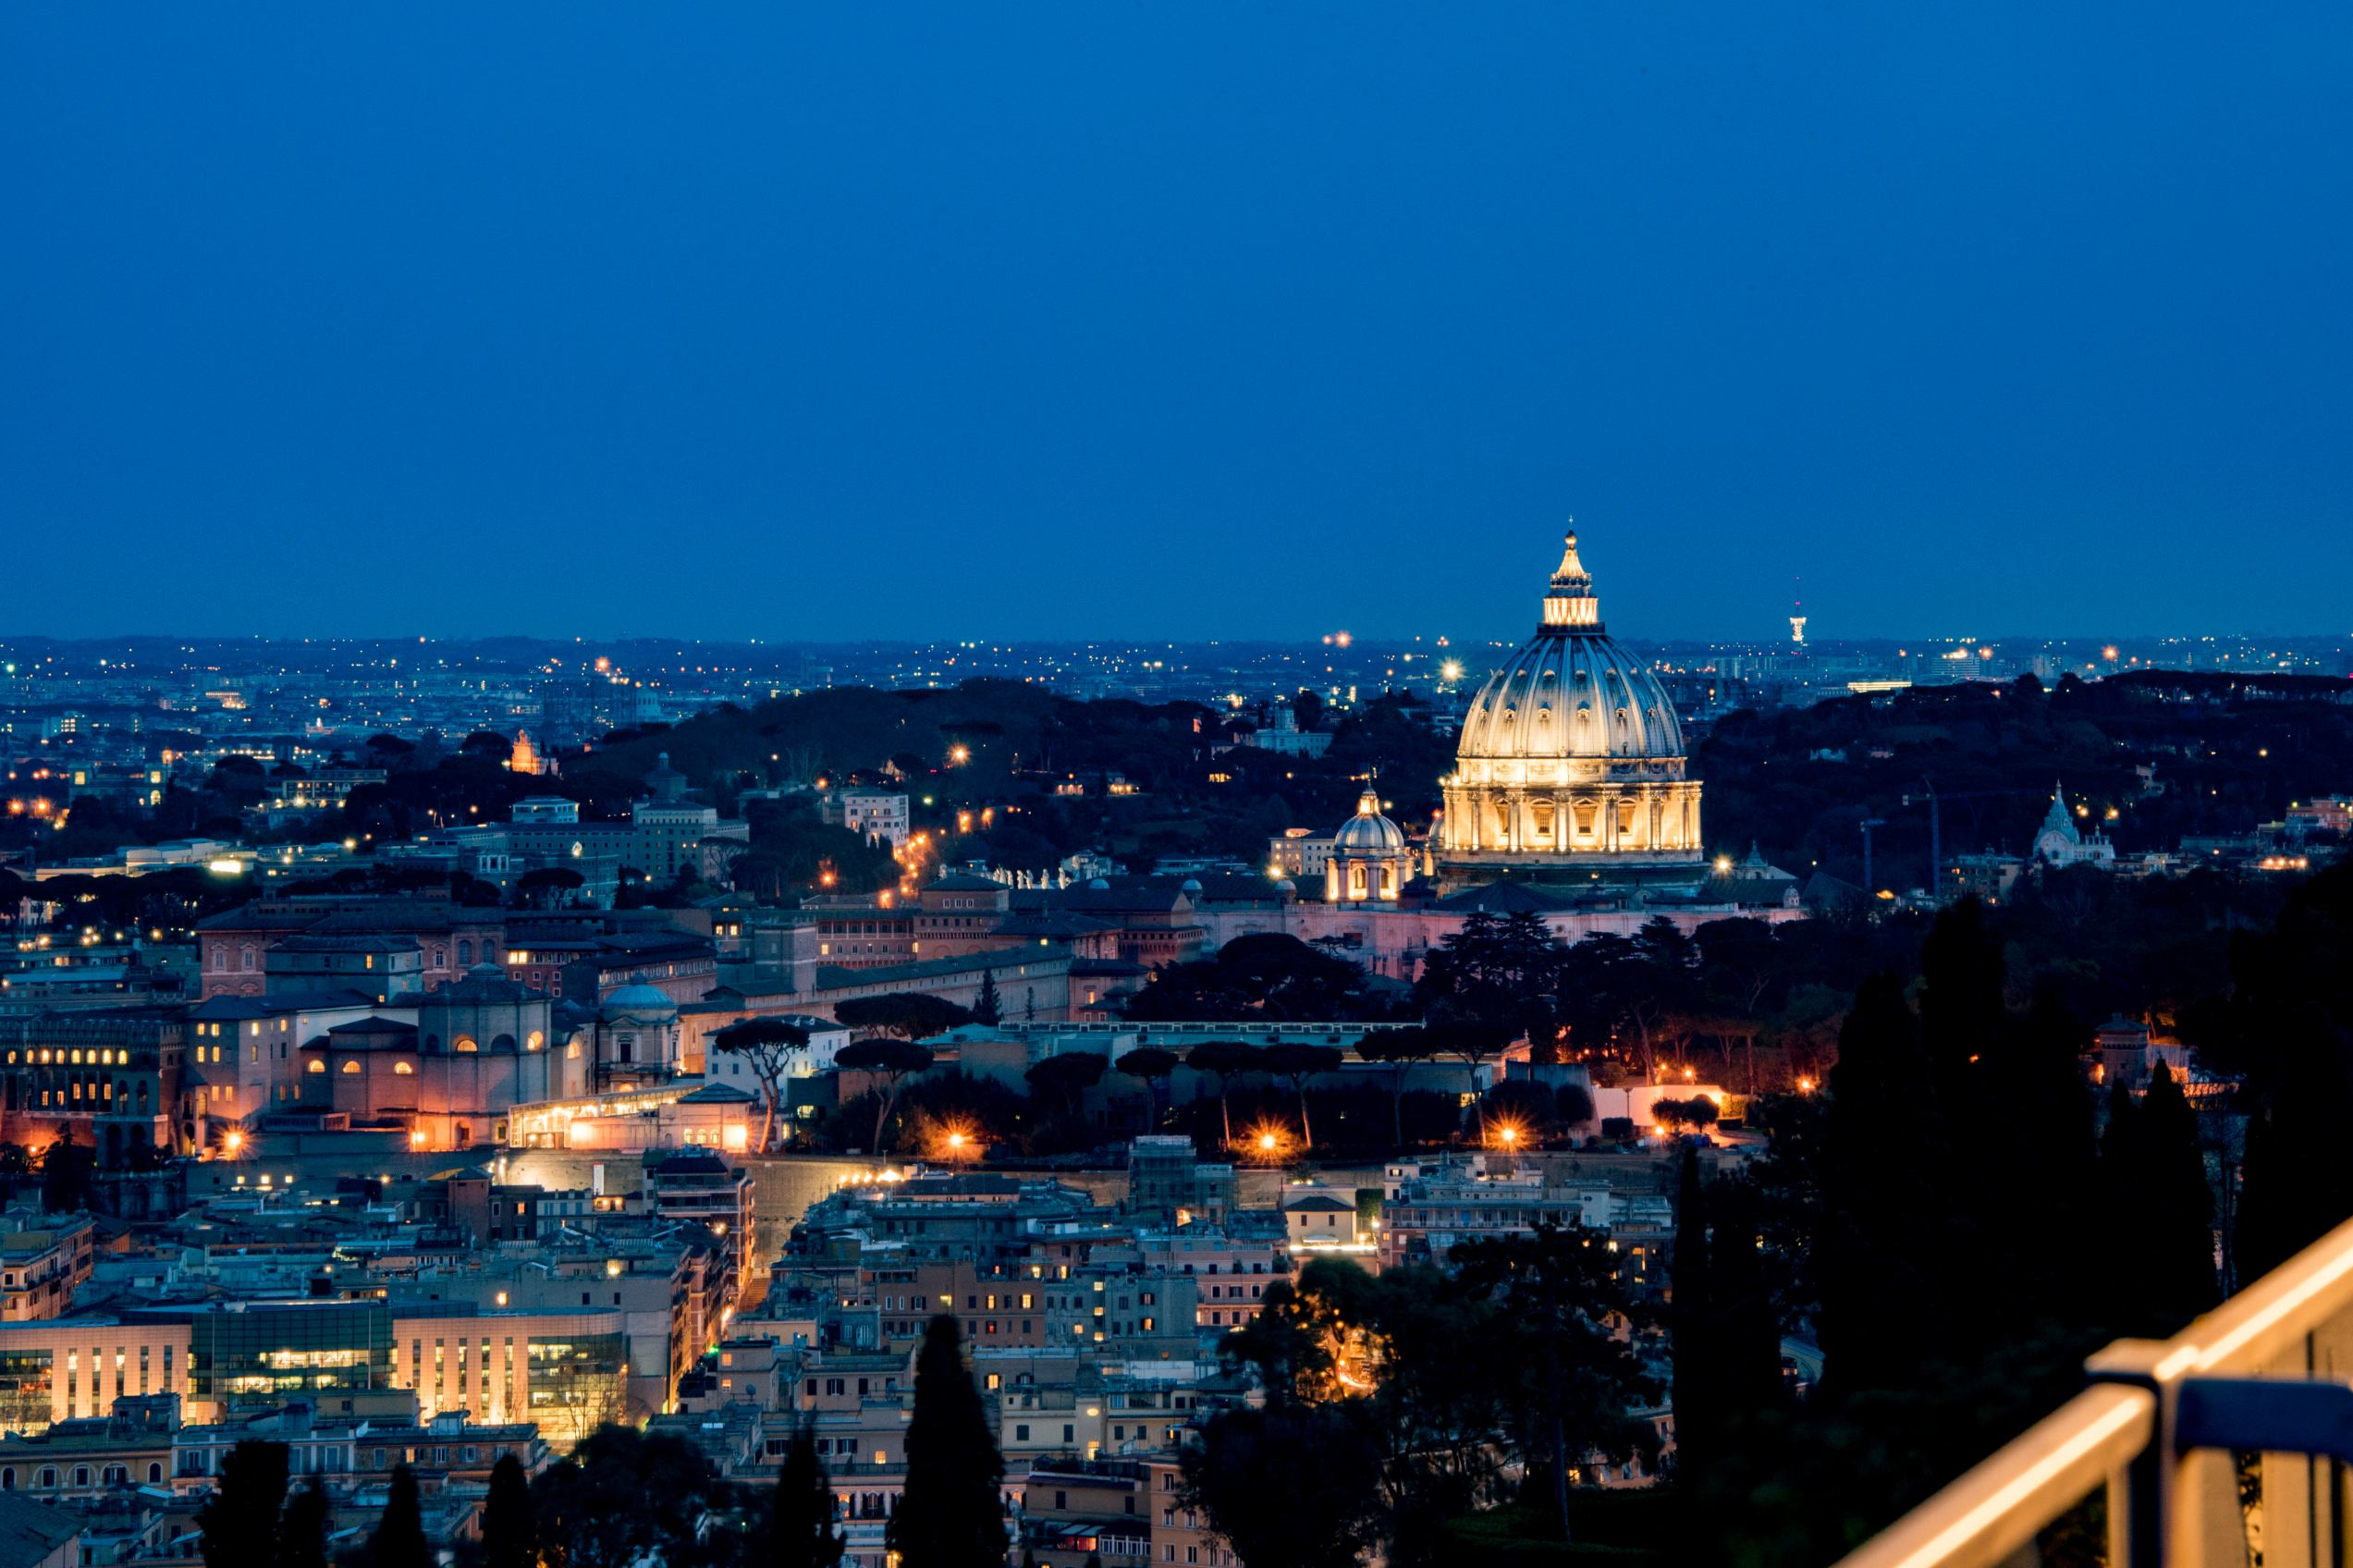 La Pergola, Rome - The view of the Vatican - Rome restaurants - Things to do in Rome